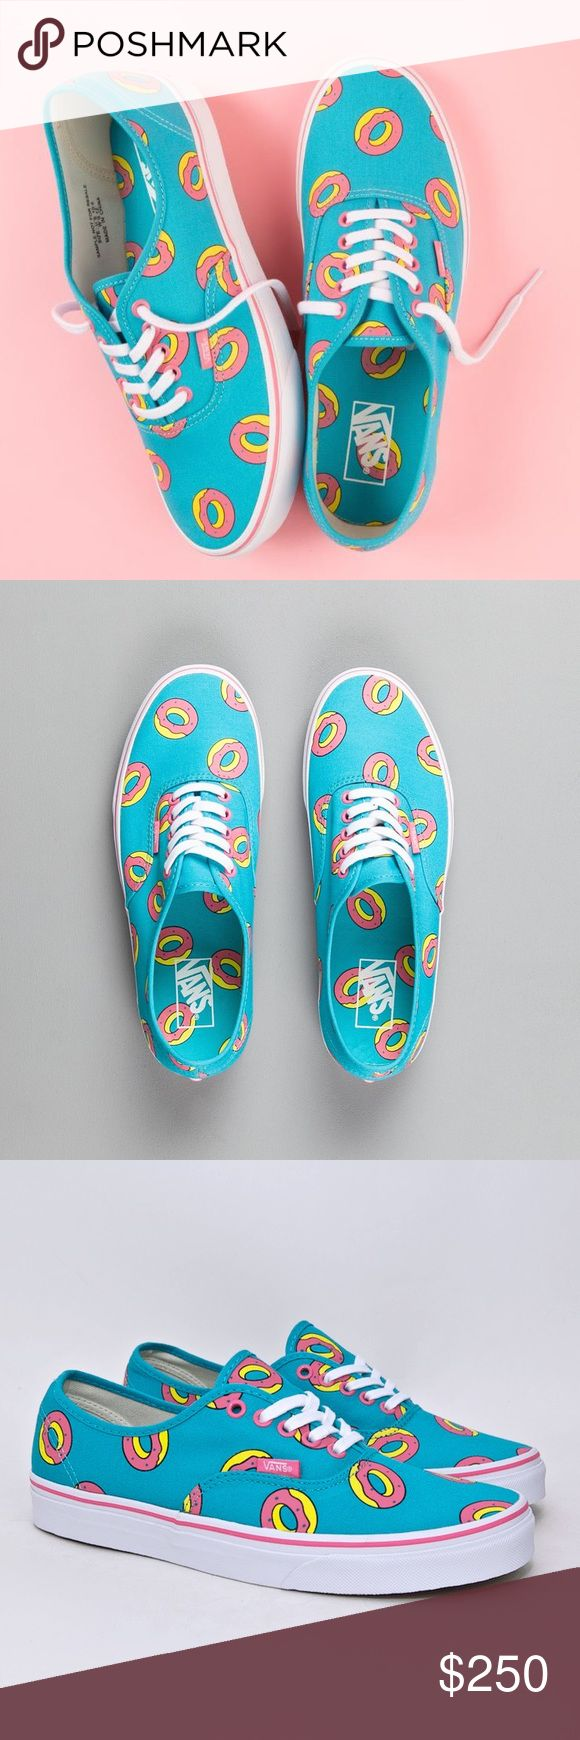 Odd Future x Vans OF Donut Shoes - Scuba Donut Limited Edition Odd Future x Vans skate shoe featuring signature Golf Wang pink donut print on a bright Scuba Blue colorway. Low profile Authentic style with pink foxing stripe, white side-stripe, and lightly cushioned printed liner. Vans logo in pink at cloth upper tag and at heel.  New. Box is missing the lid. Never worn. Ultra rare. Size 6.5 men / 8 women odd future Shoes Sneakers